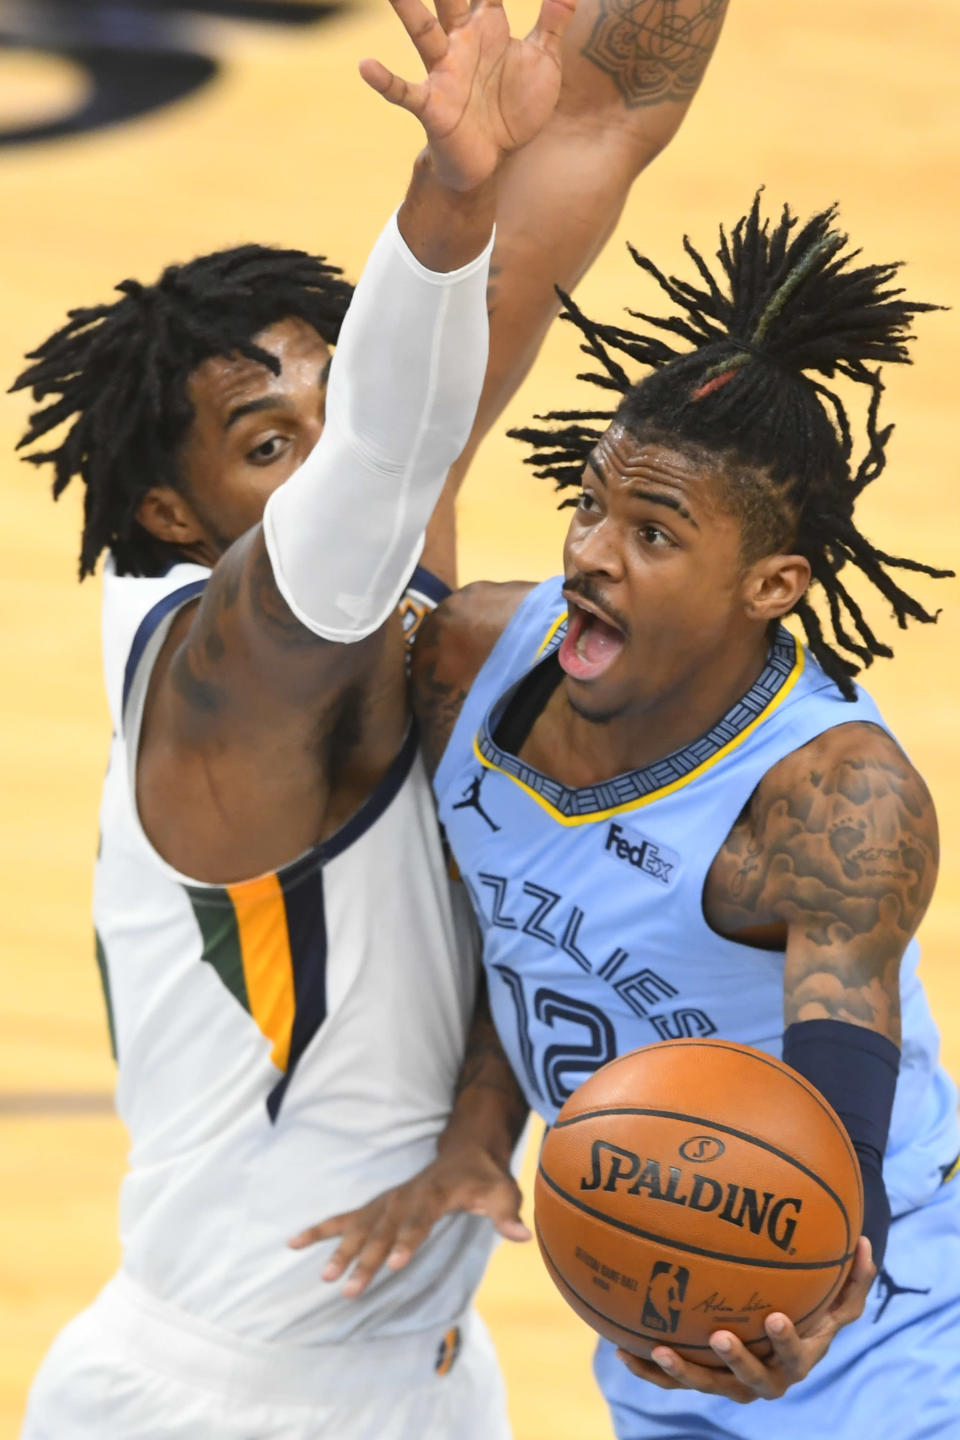 Memphis Grizzlies guard Ja Morant (12) goes to the basket as Utah Jazz center Derrick Favors defends during the first half of Game 3 of an NBA basketball first-round playoff series Saturday, May 29, 2021, in Memphis, Tenn. (AP Photo/John Amis)